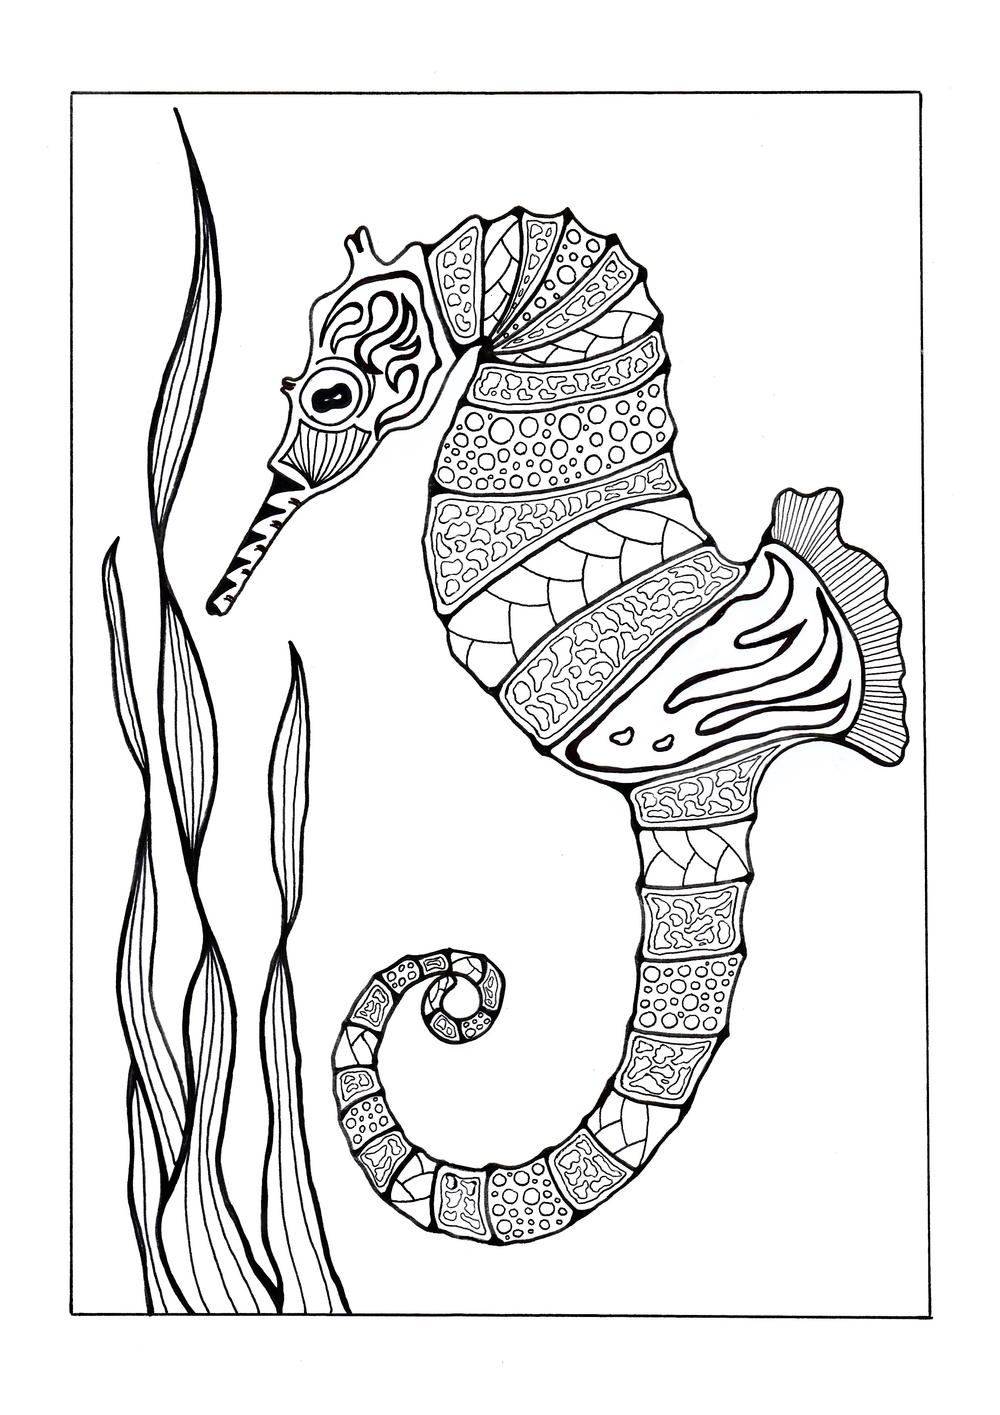 Colorful Seahorse Adult Coloring Page | FaveCrafts.com | free printable coloring pages for adults animals